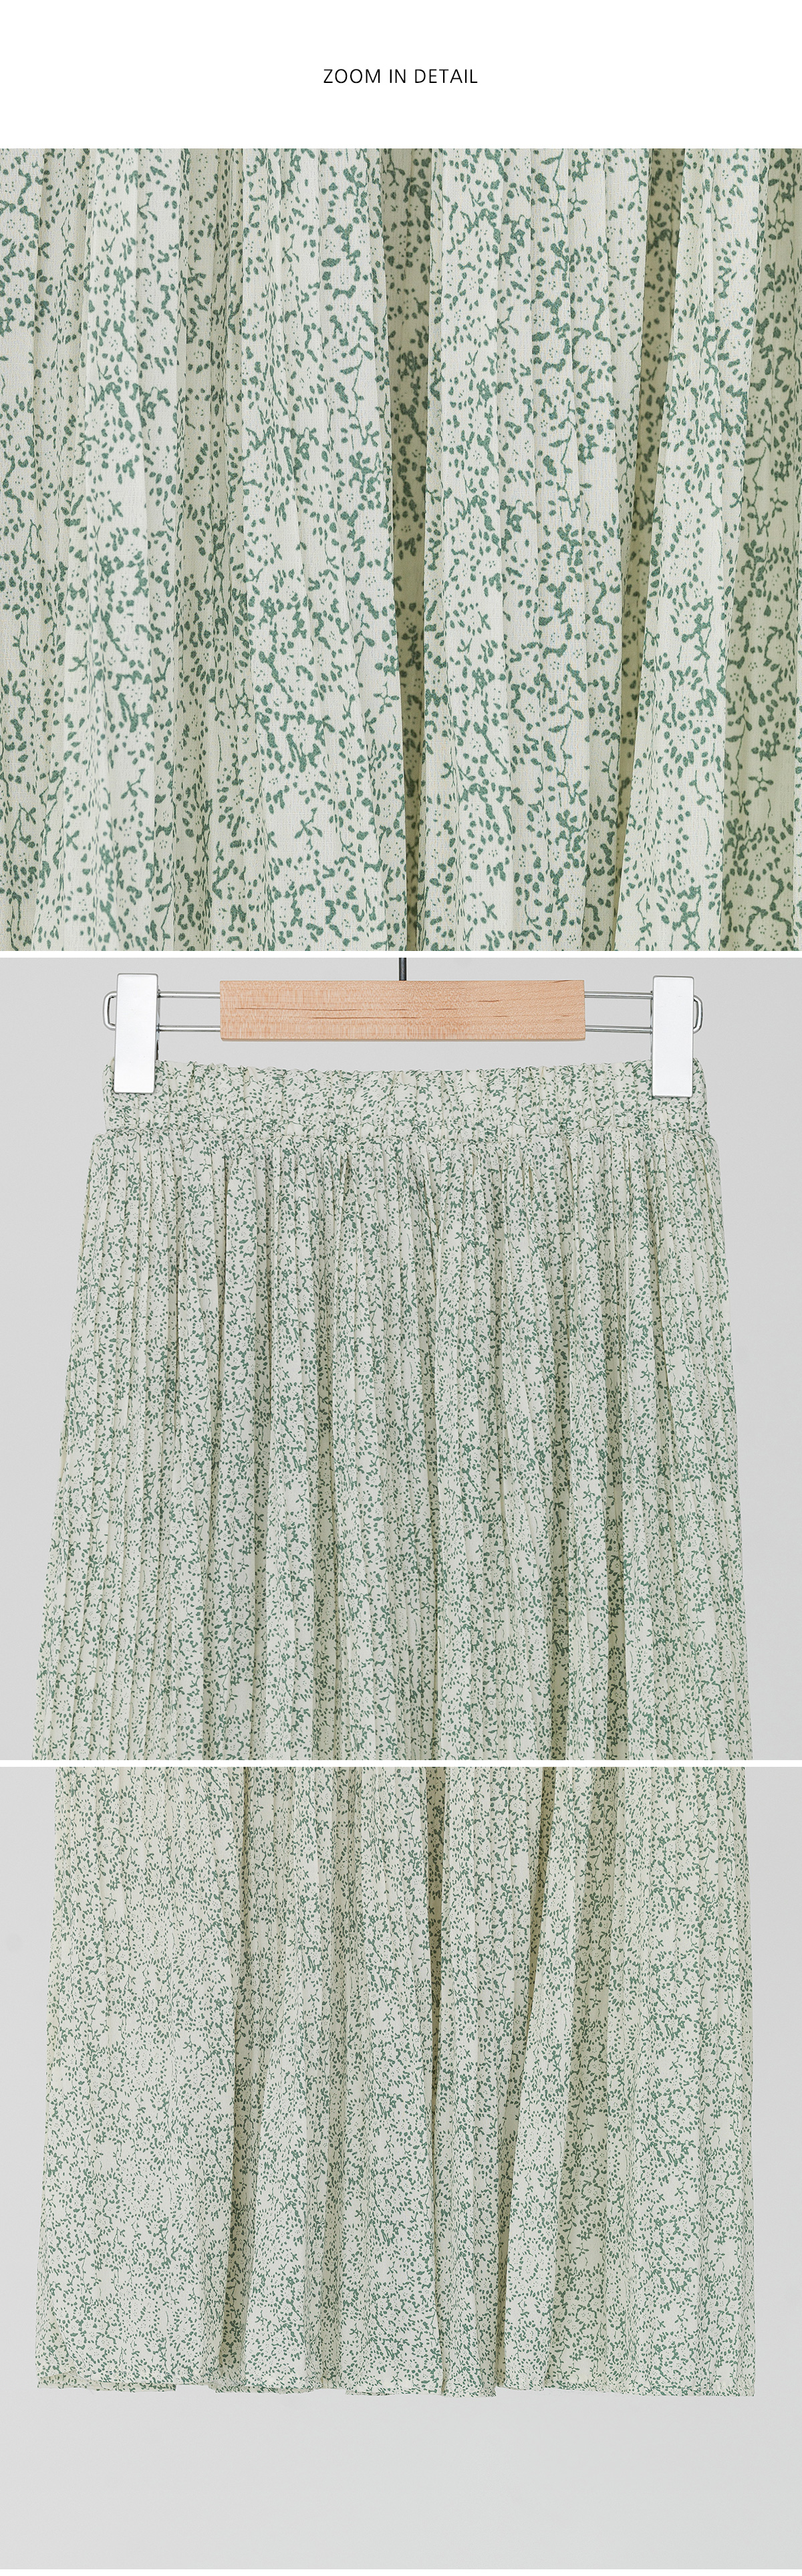 romantic flower pleats skirt